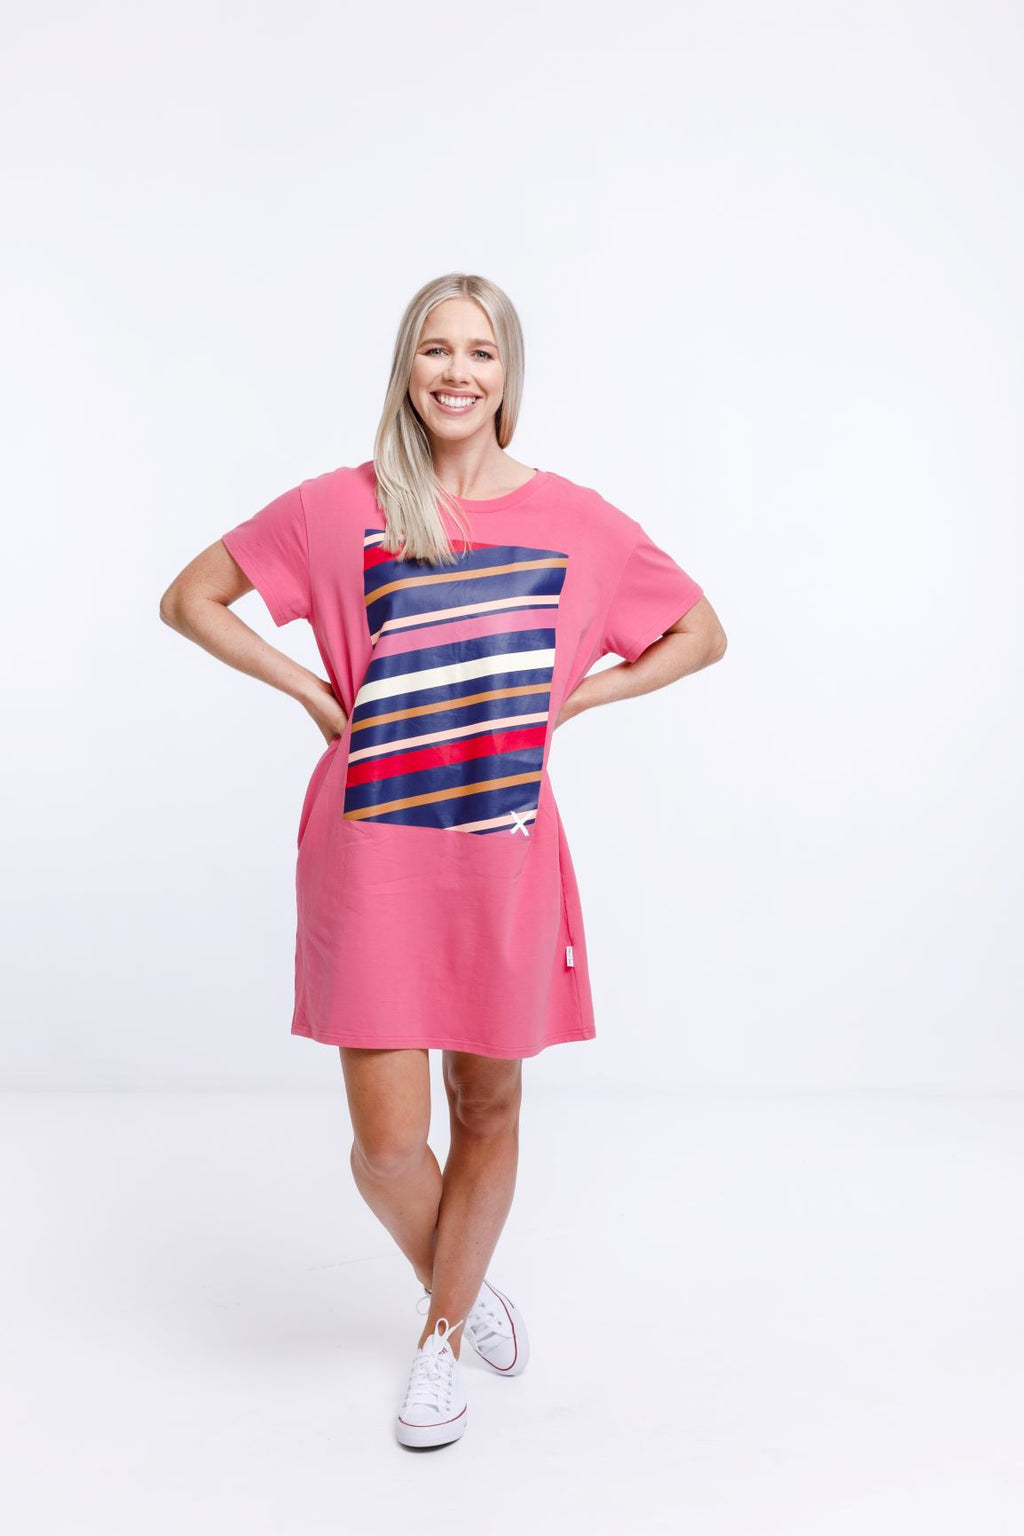 BOYFRIEND DRESS - Fruit Dove Pink with Autumn Stripe Placement Print